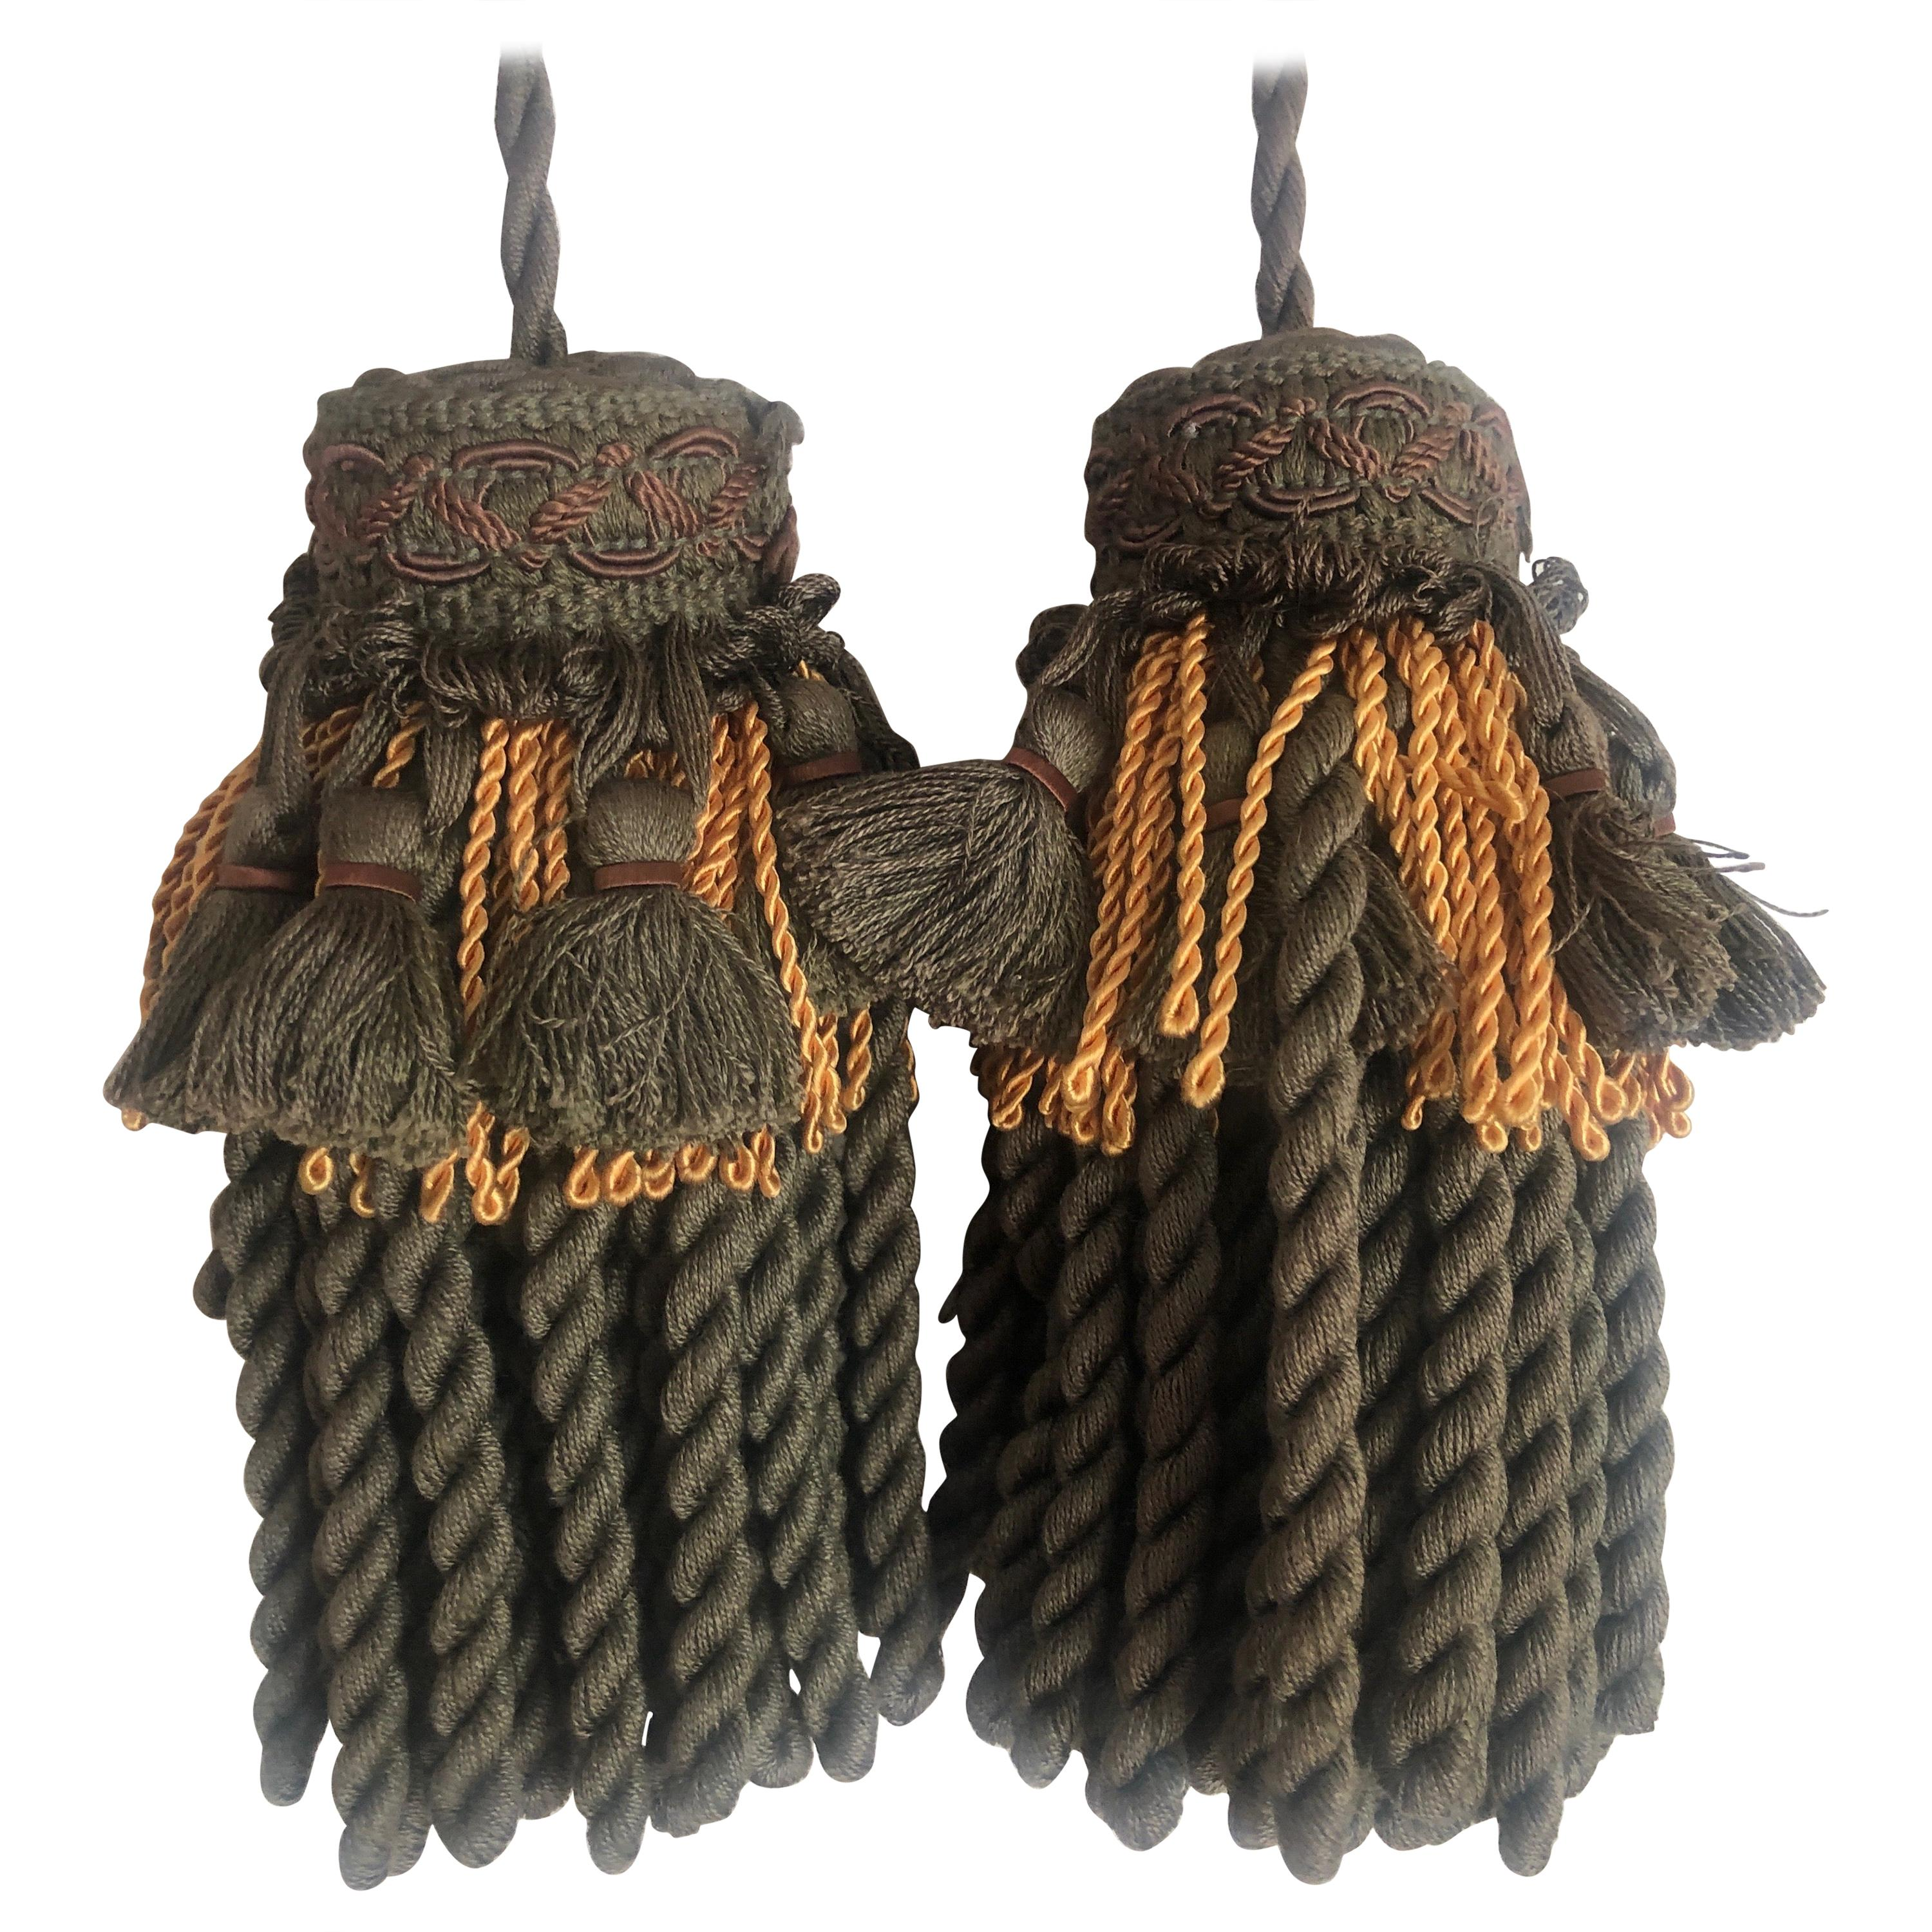 Pair of Green and Gold Decorative Key Tassels